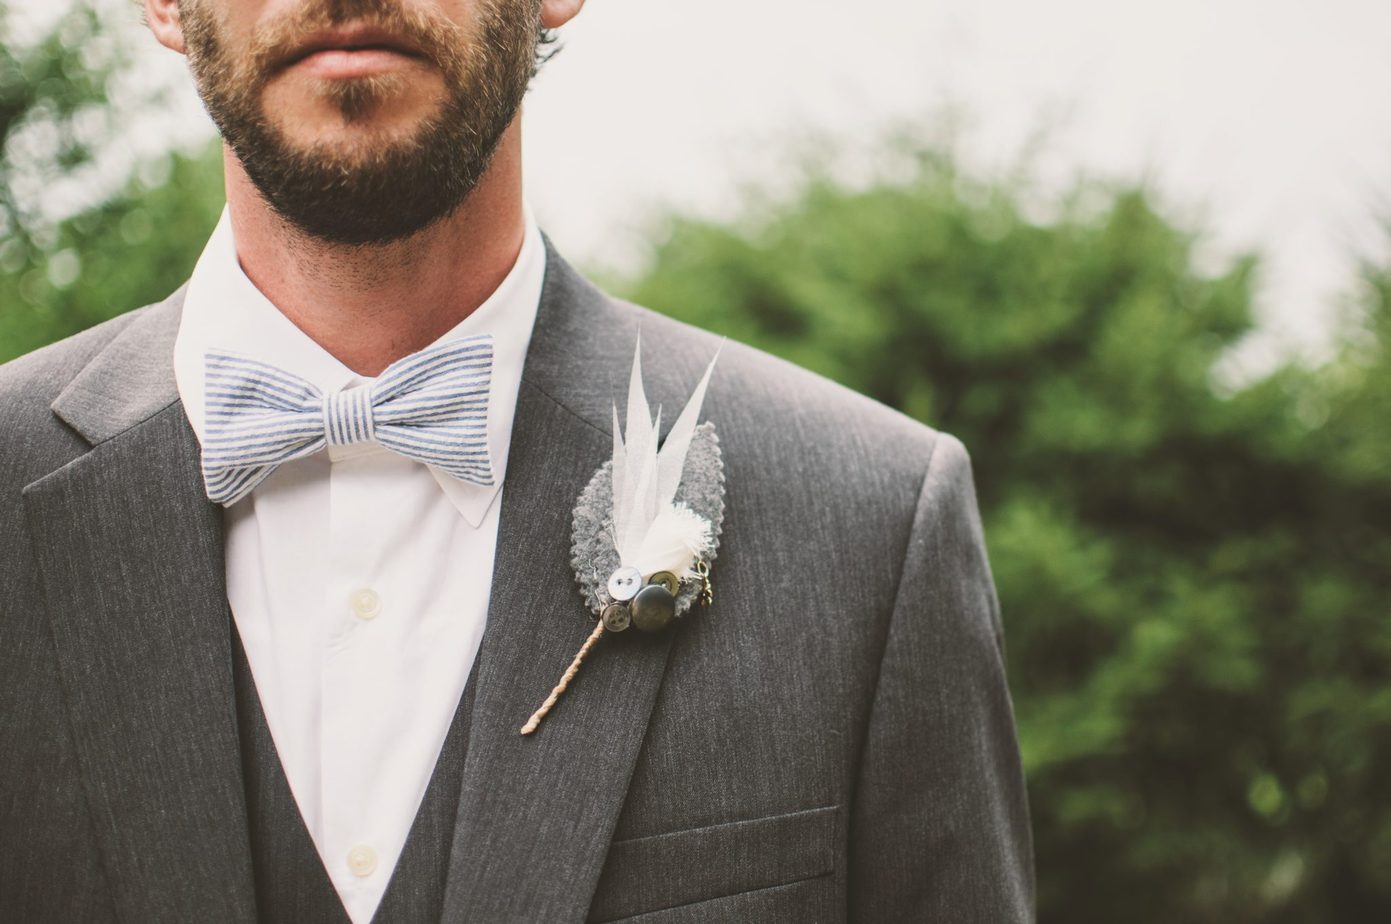 Promote your wedding business